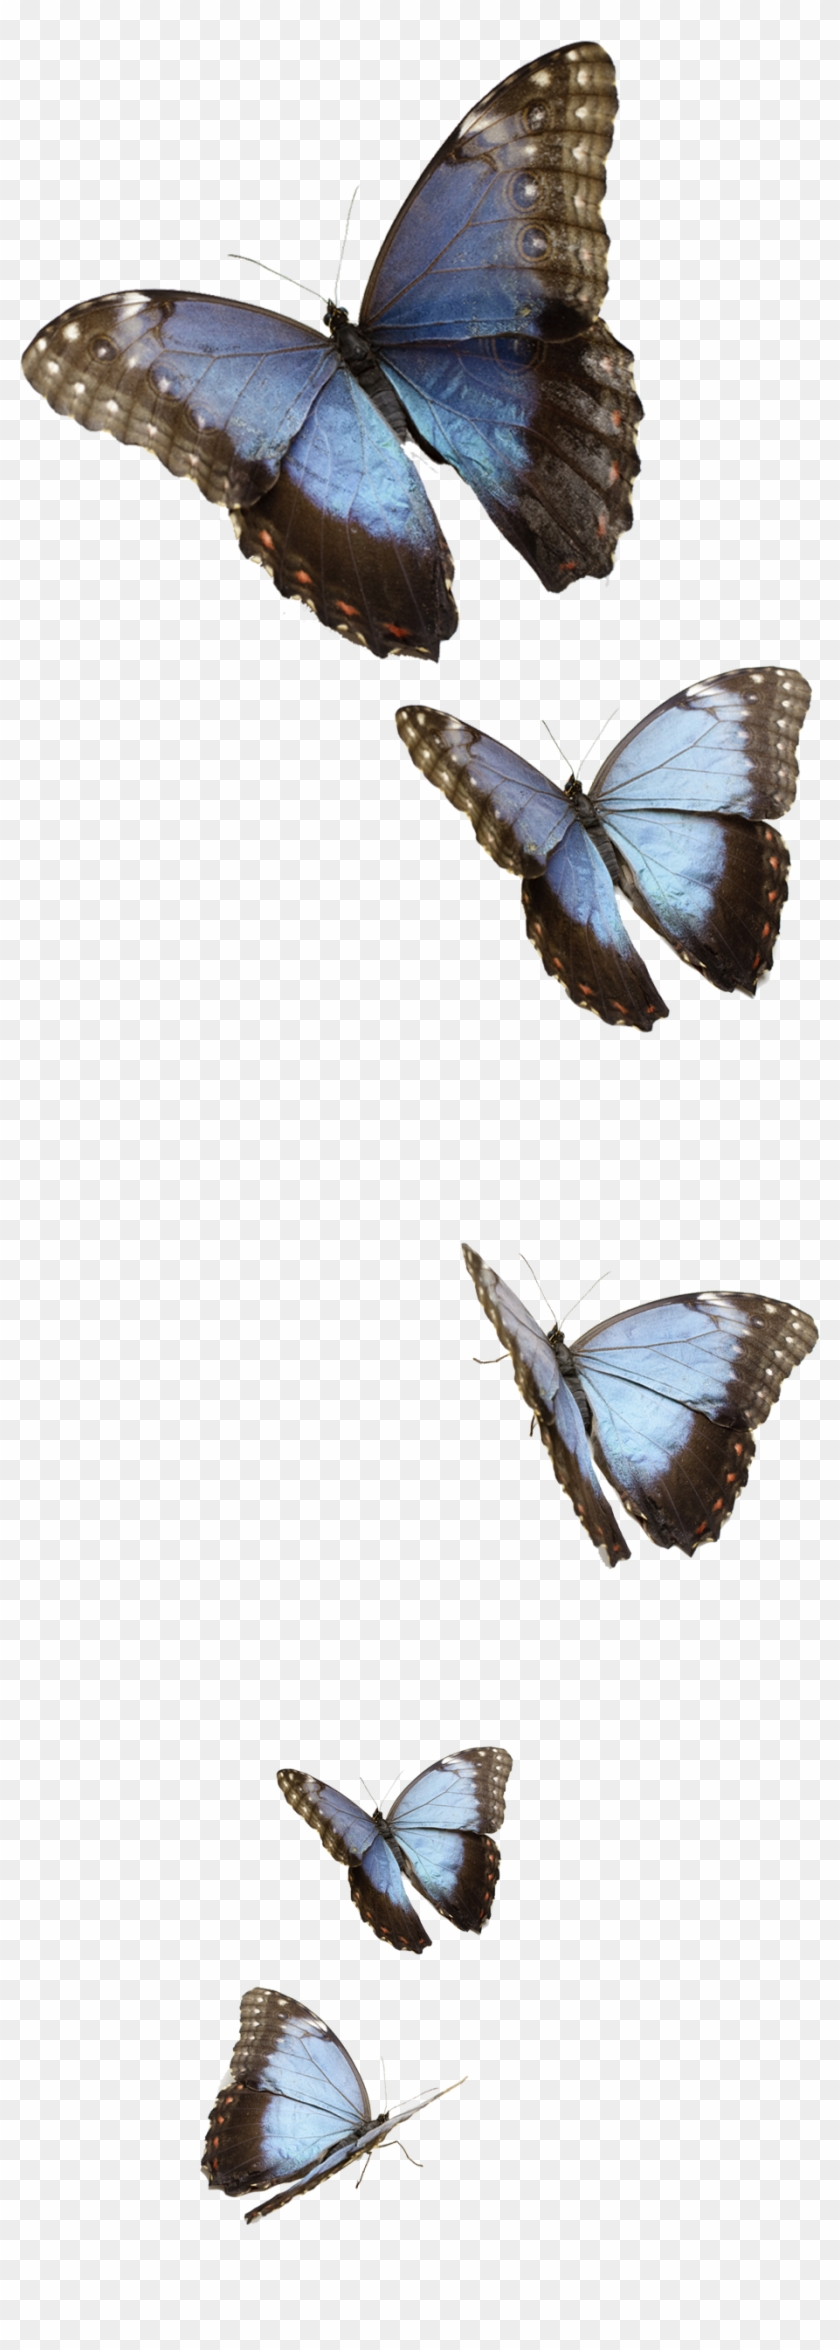 Transparent Blue Butterfly Png, Png Download - 1200x2880(#81072